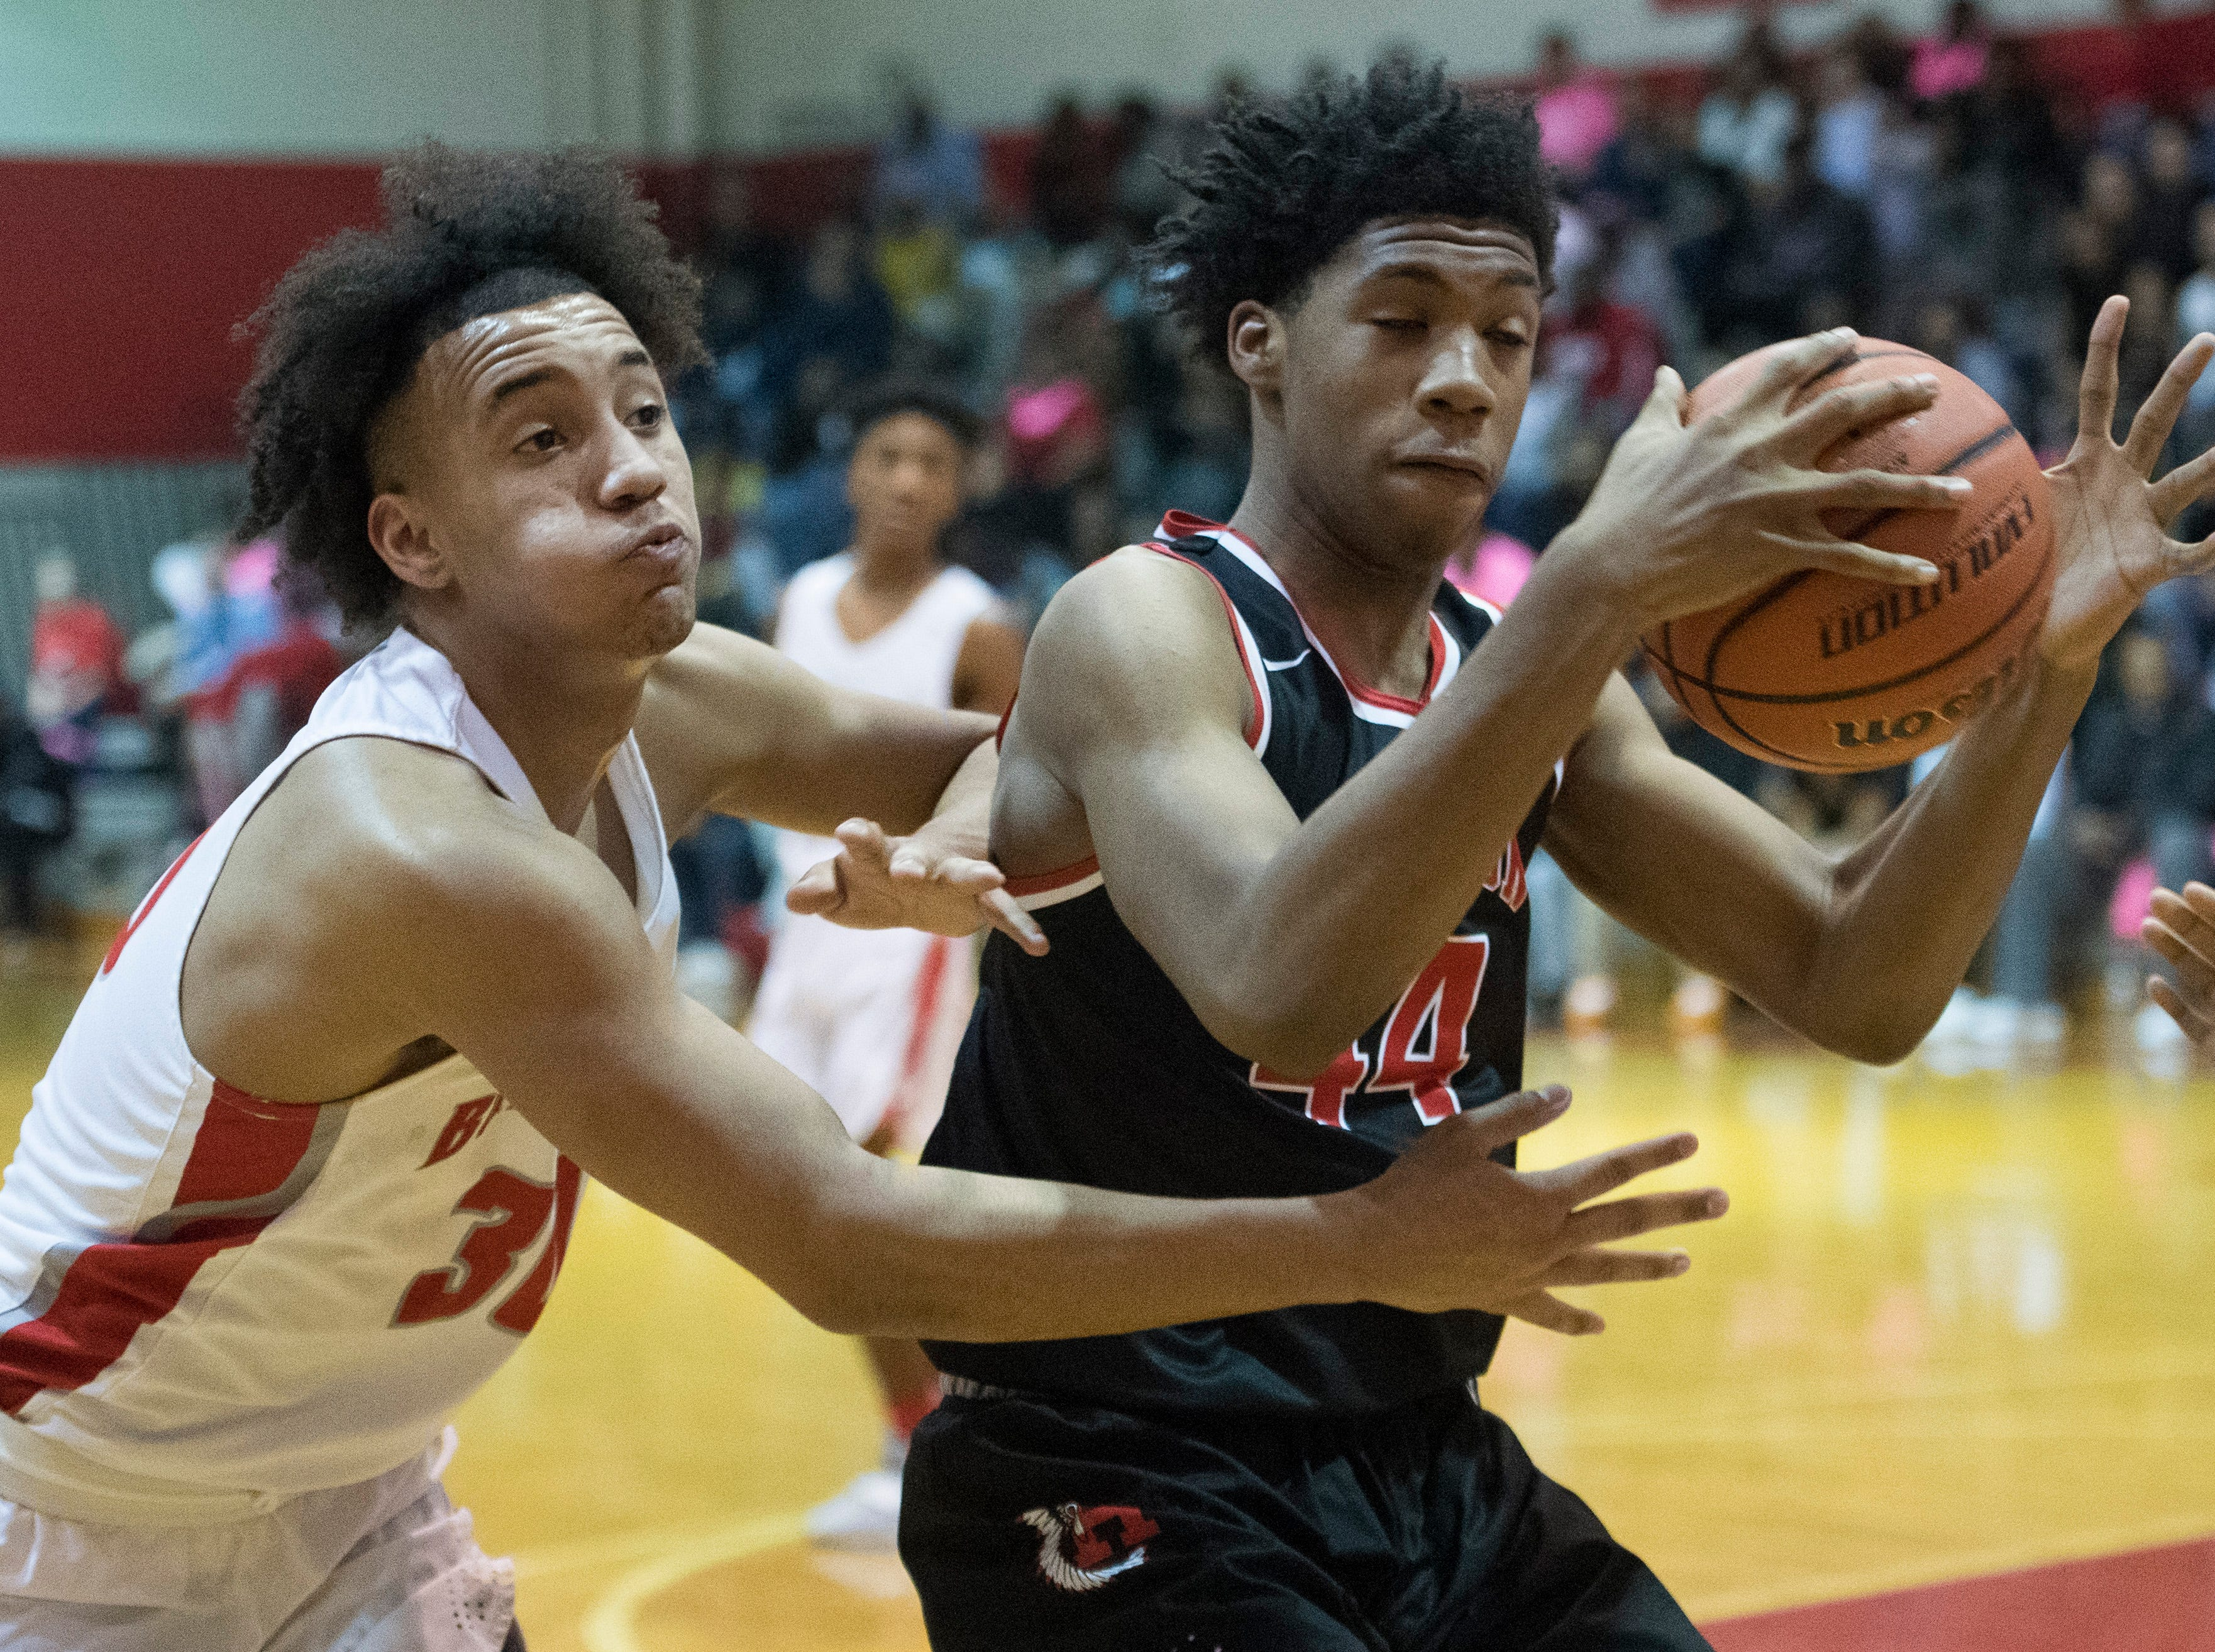 Bosse's Donovan Mcneal (30) attempted to steal the ball from Harrison's Terrence Ringo (44) during the Harrison vs Bosse game at Bosse High School Tuesday, Feb. 12, 2019.